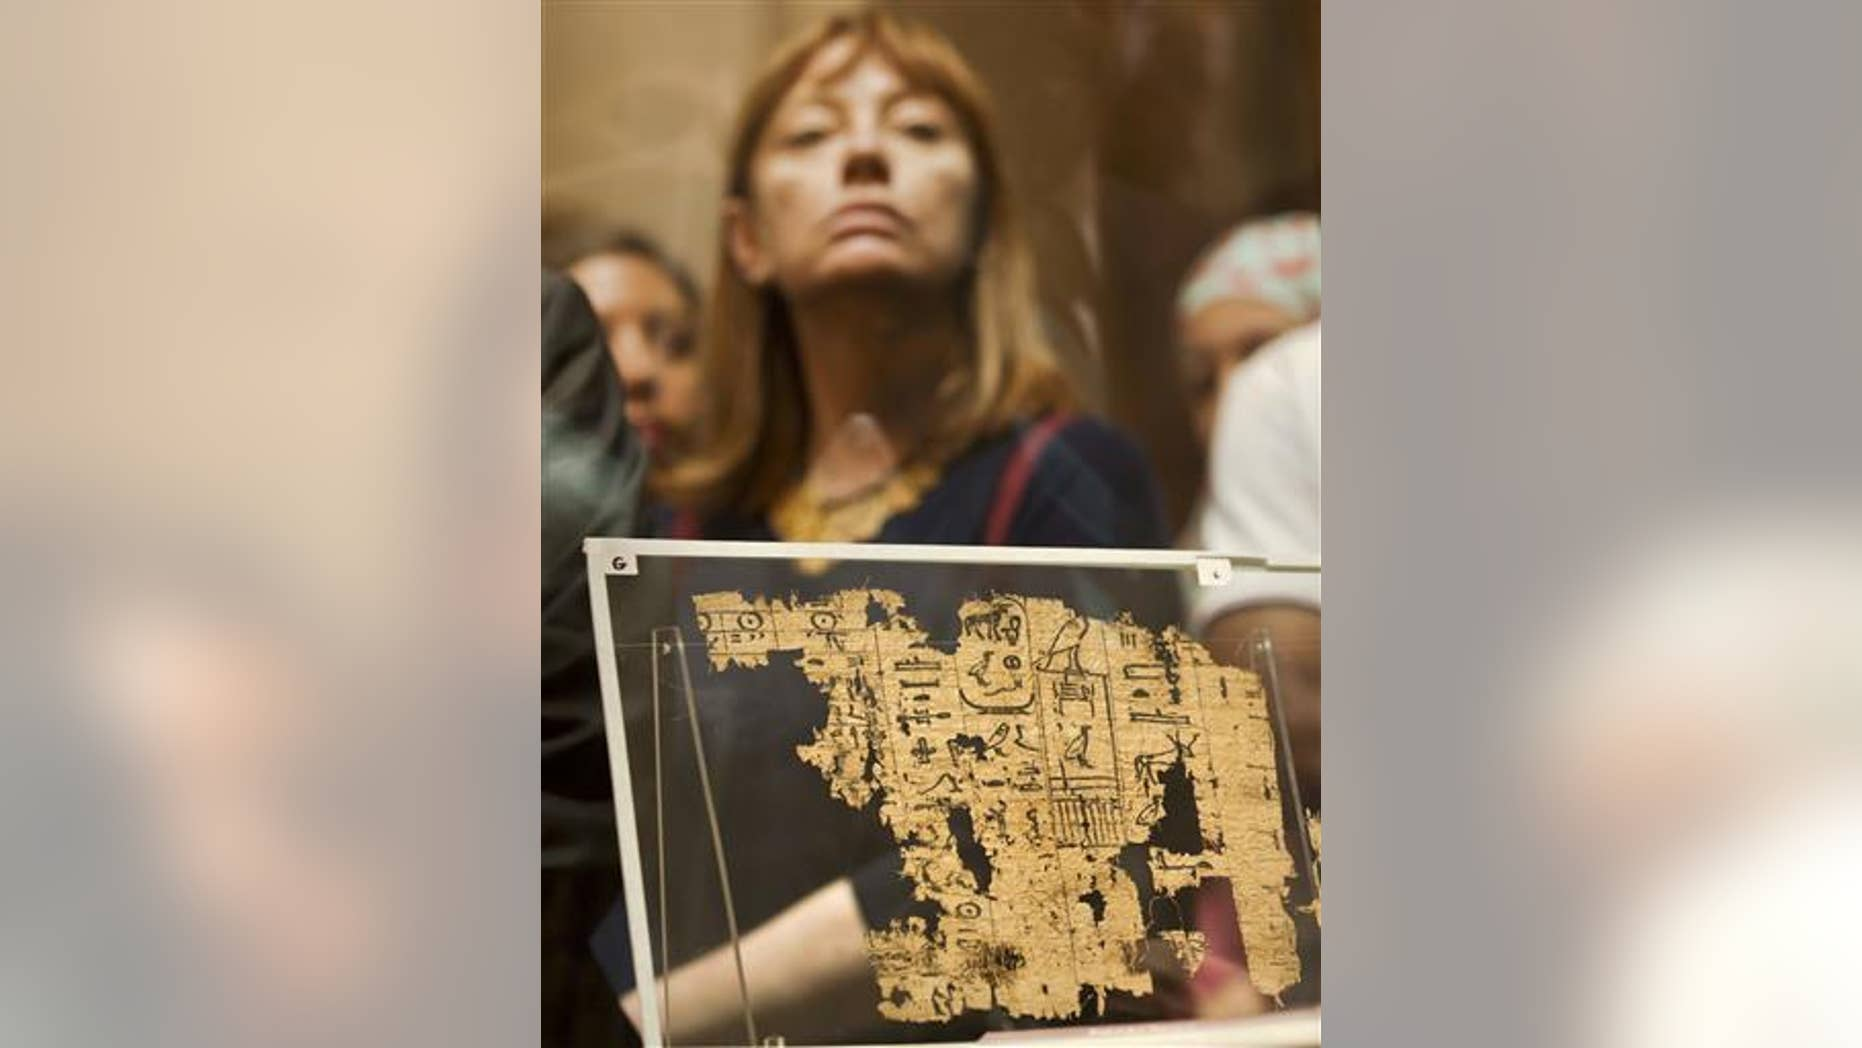 A visitor looks at one of the oldest papyri in the history of Egyptian writing among the collection of King Khufu papyri discovered at Wadi El-Jarf port, as it is on display for the first time at the Egyptian museum in Cairo, Egypt, Thursday, July 14, 2016.